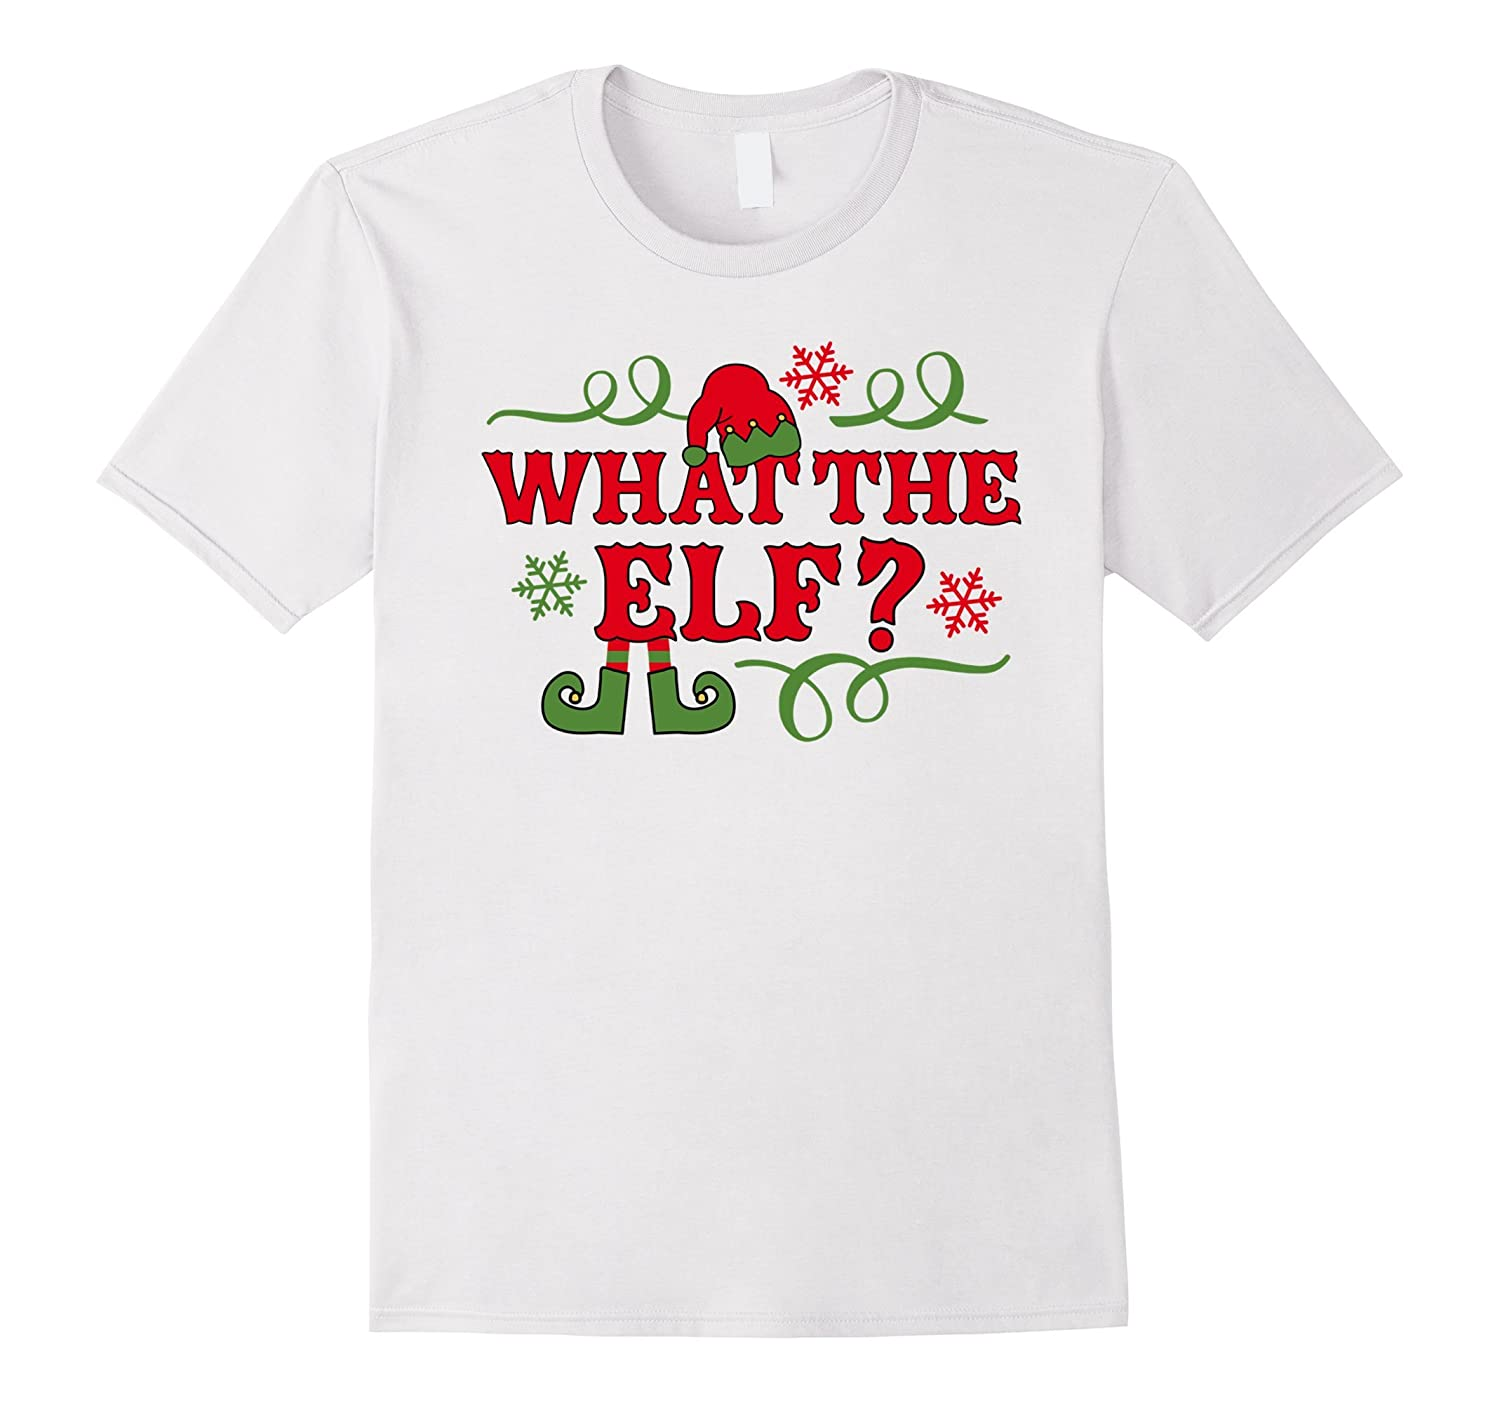 430c05e0 Funny What the Elf T-Shirt - Funny Family Christmas Shirts-ANZ ...